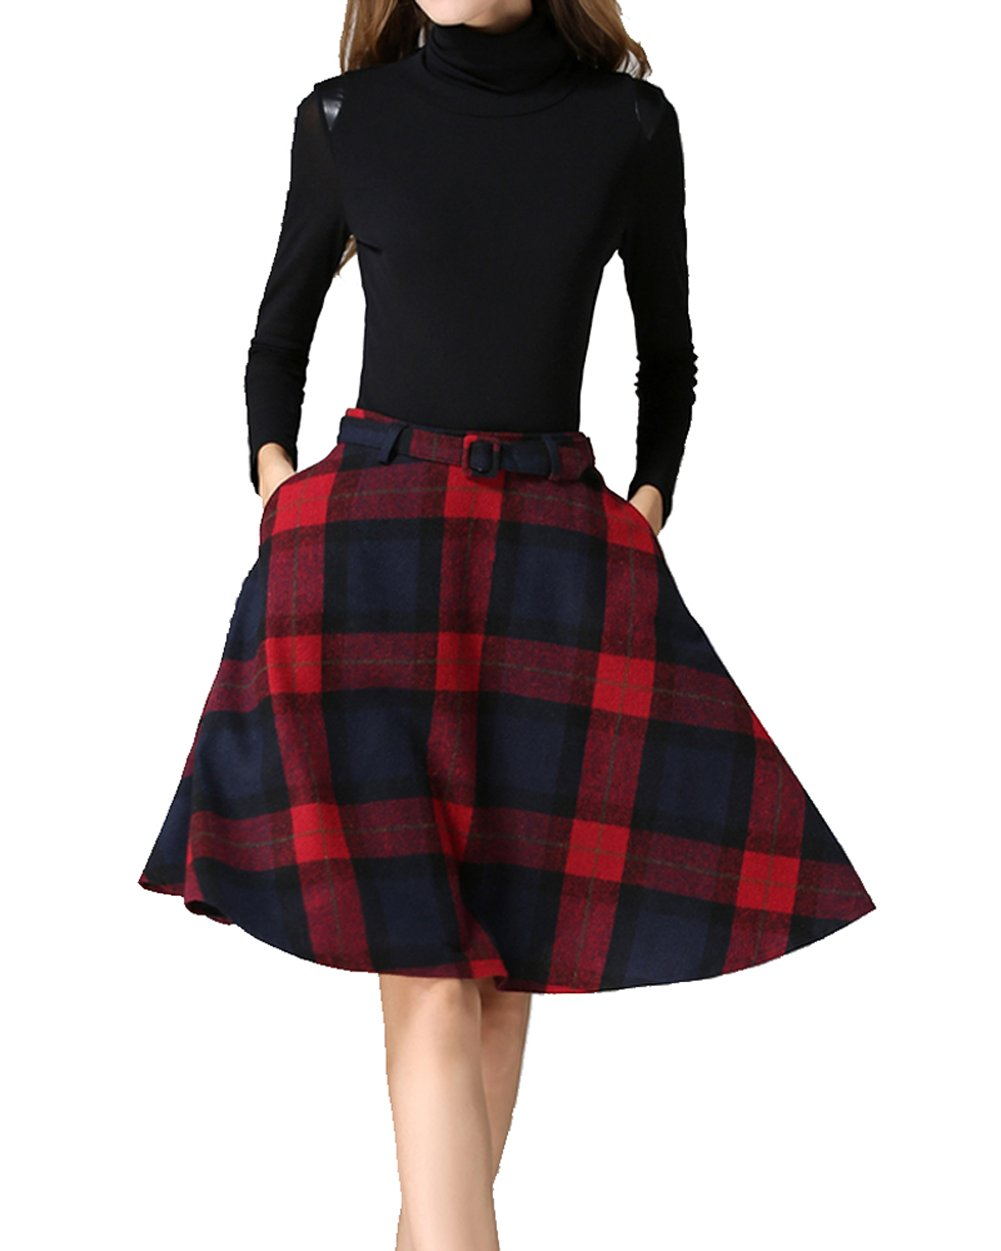 Womens Vintage Plaid Wool High Waist A-lineKnee Length Sakter Skirt with Pockets(S/US 2, Red) by Armear (Image #2)